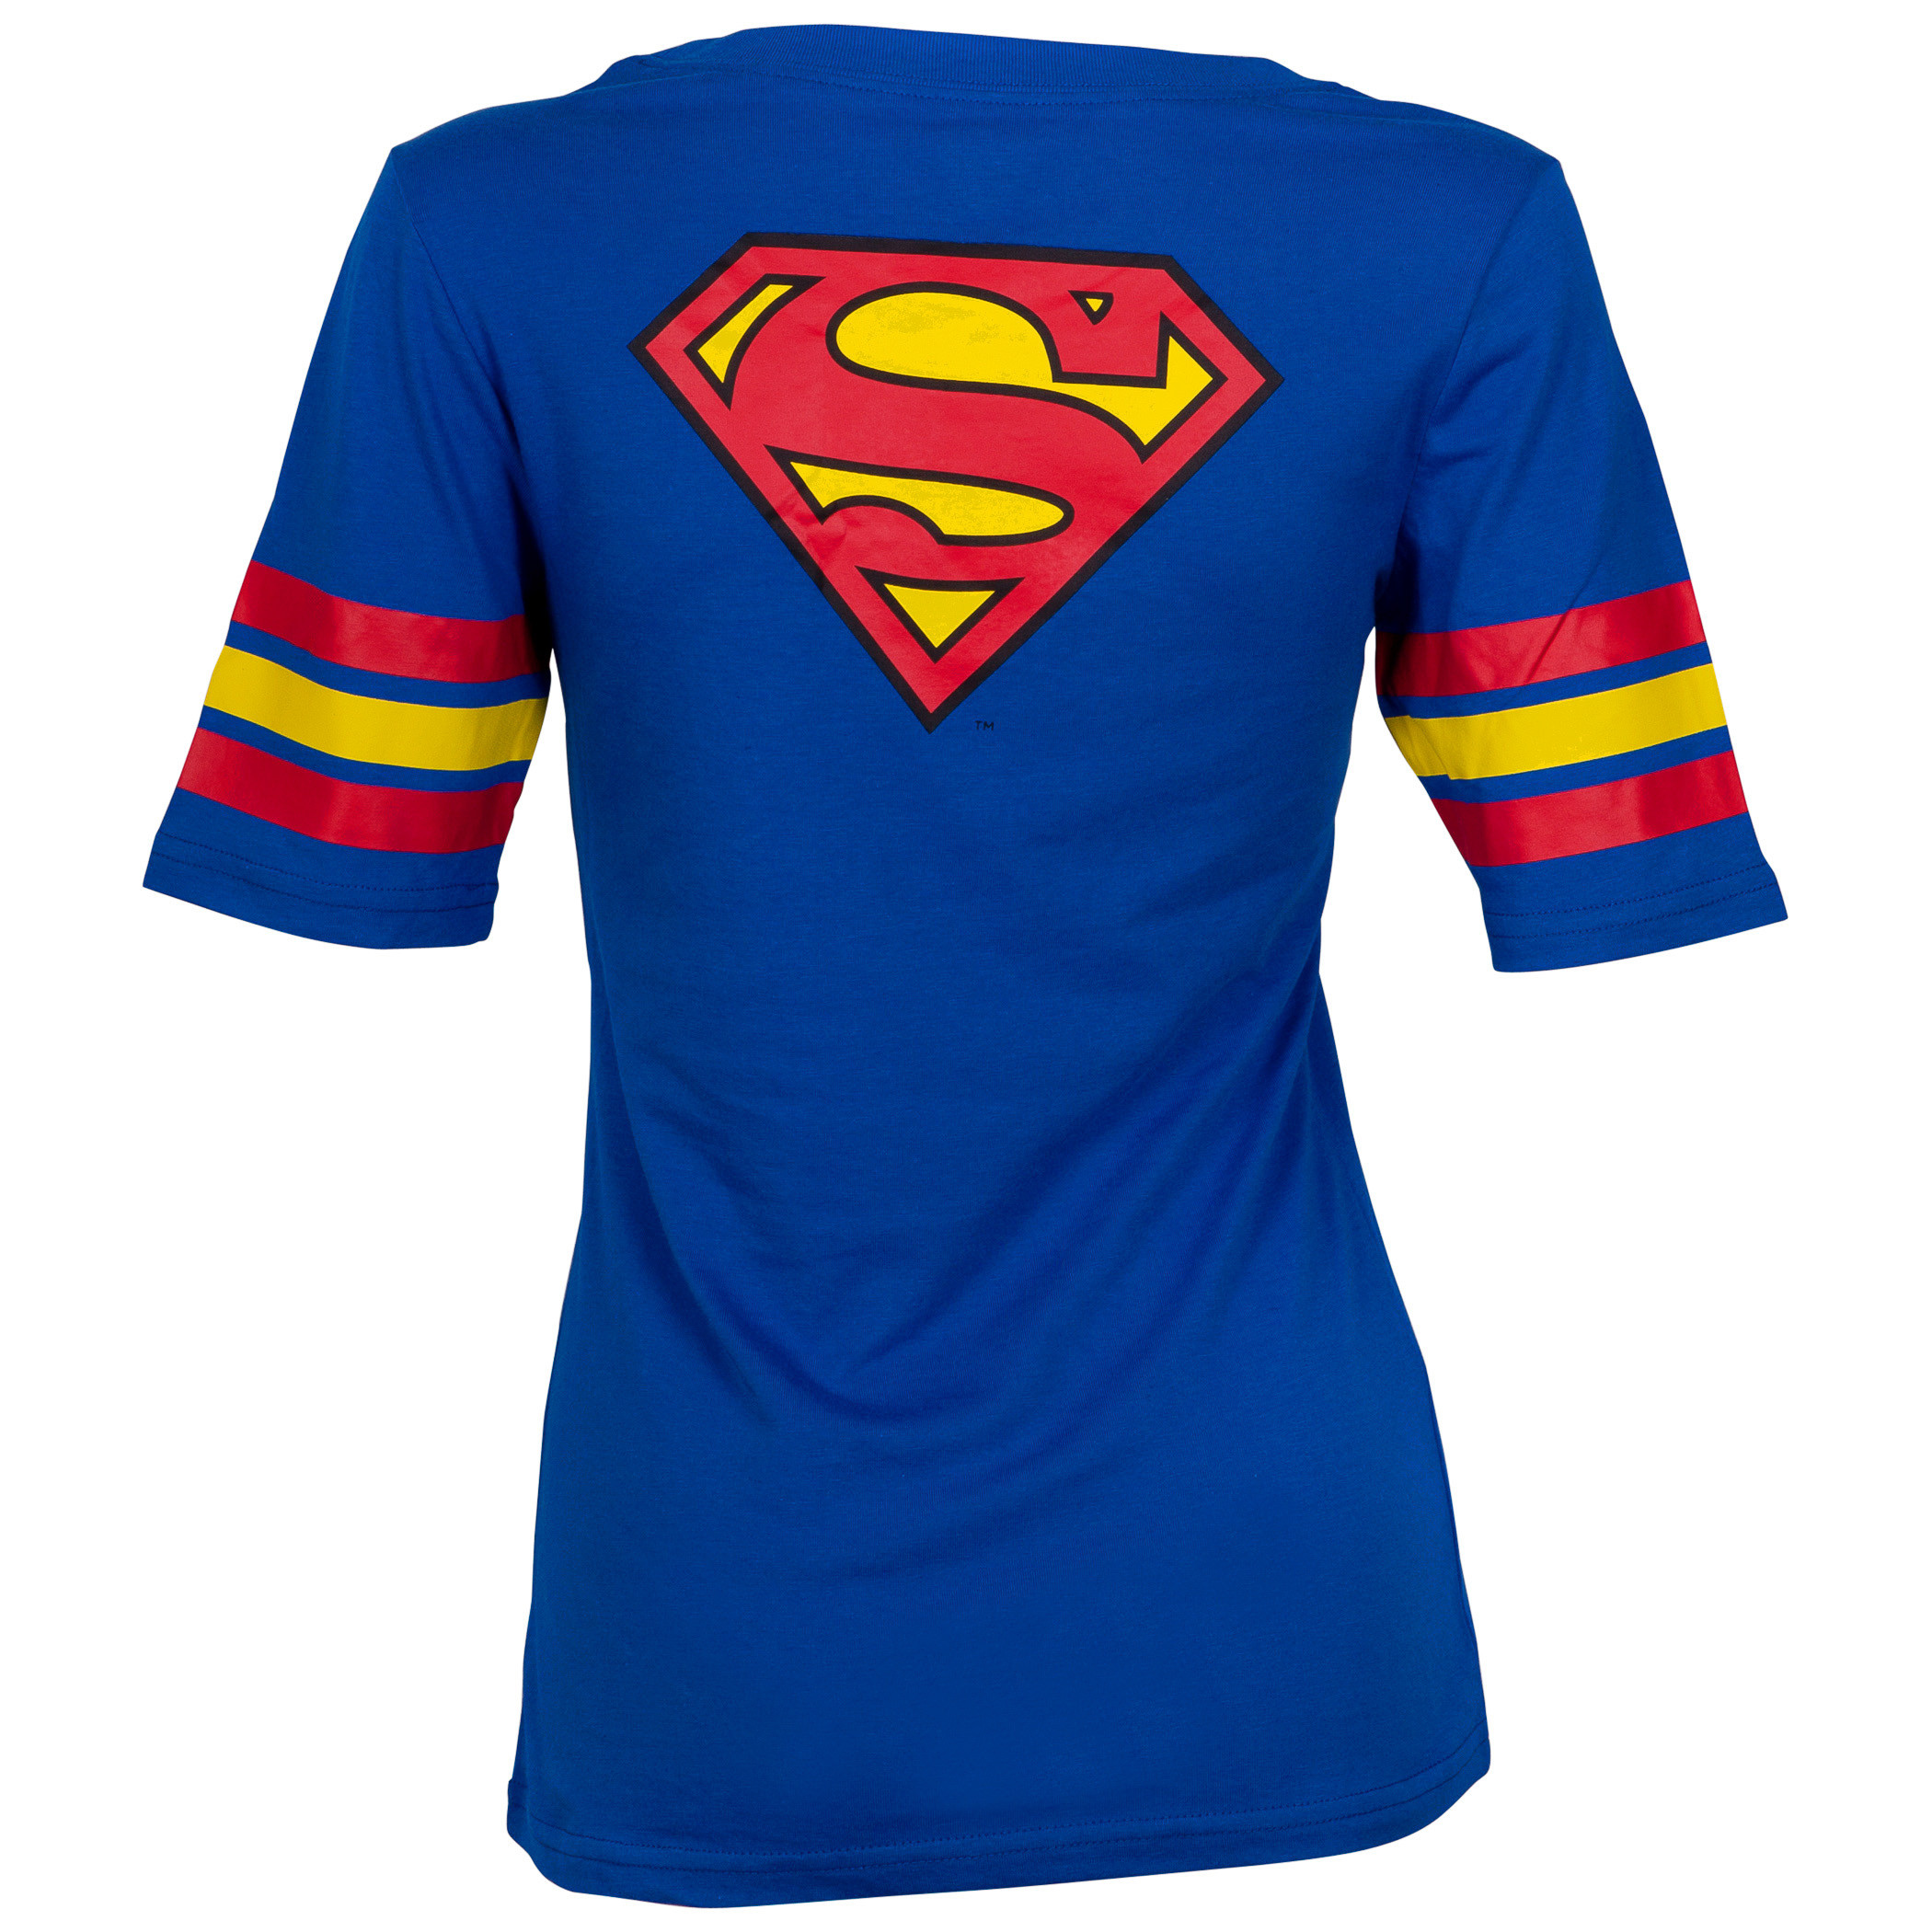 Superman Logo Jersey Print Women's T-Shirt